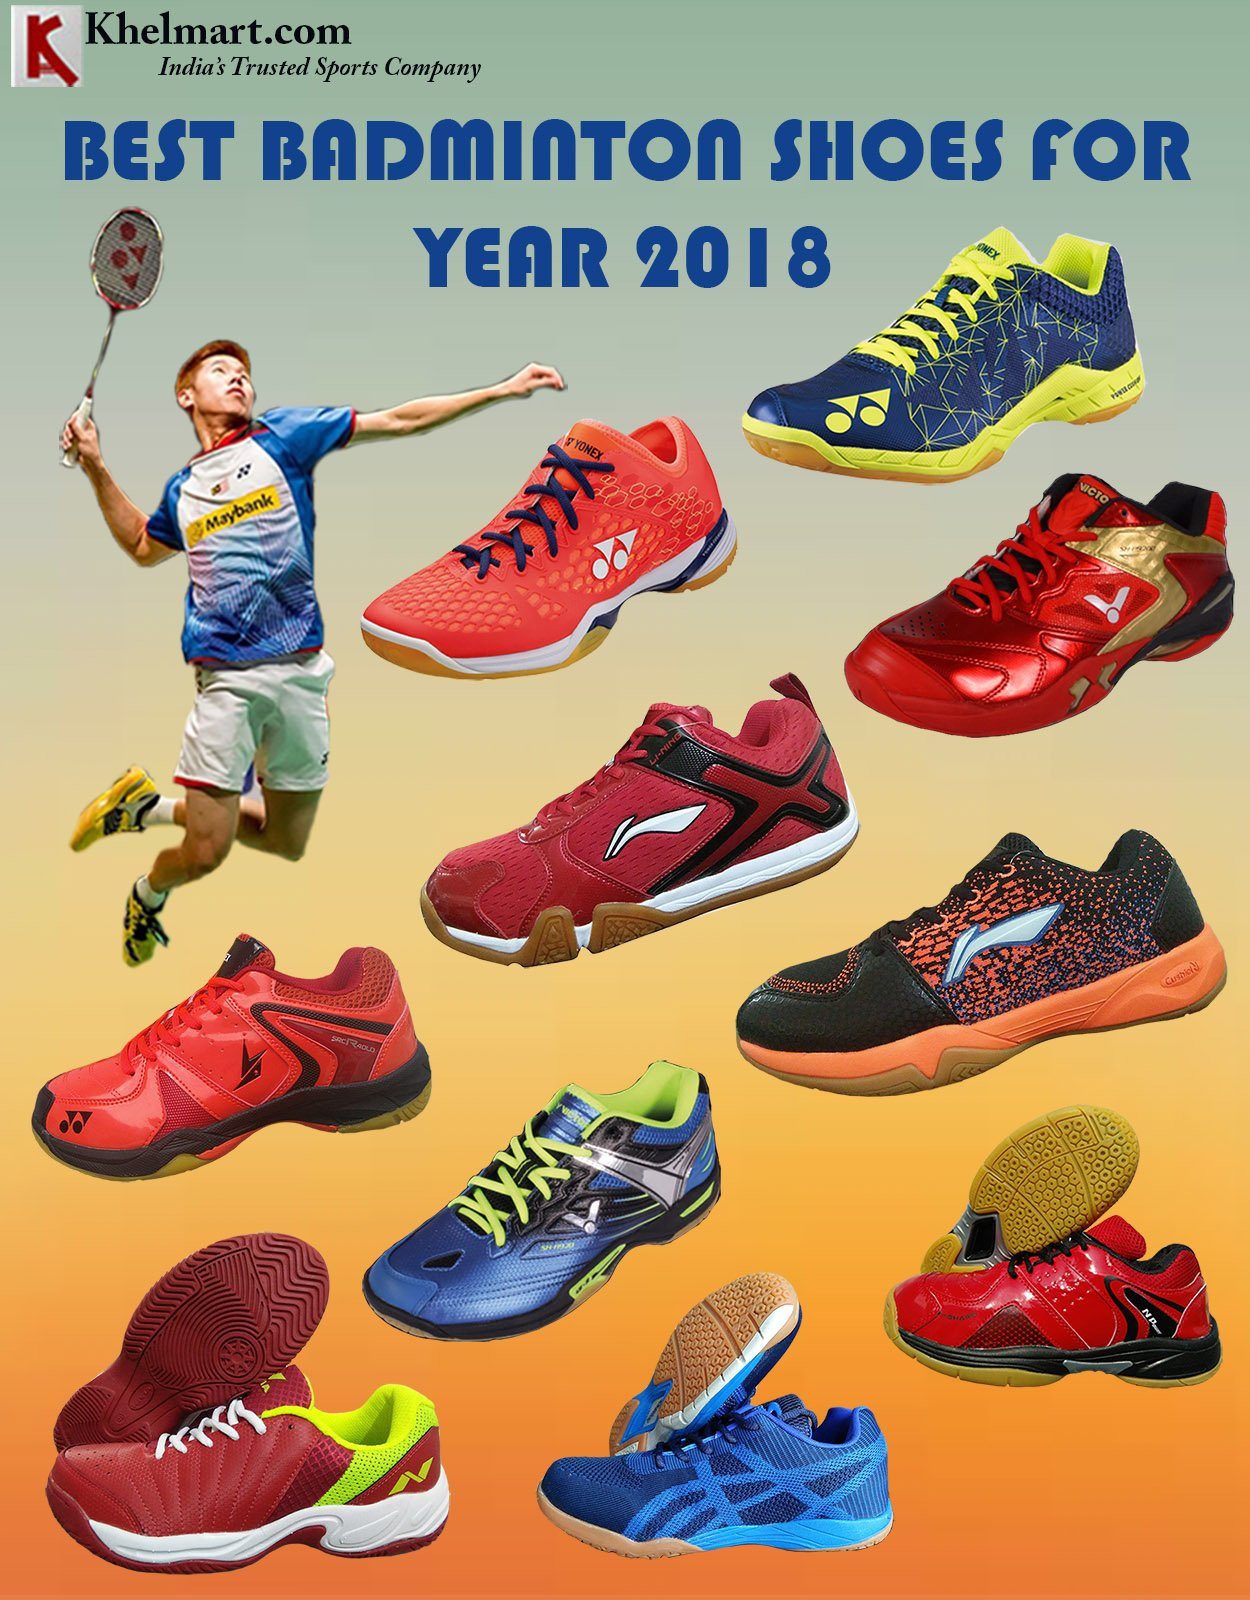 BEST-BADMINTON-SHOES-FOR-2018.jpg